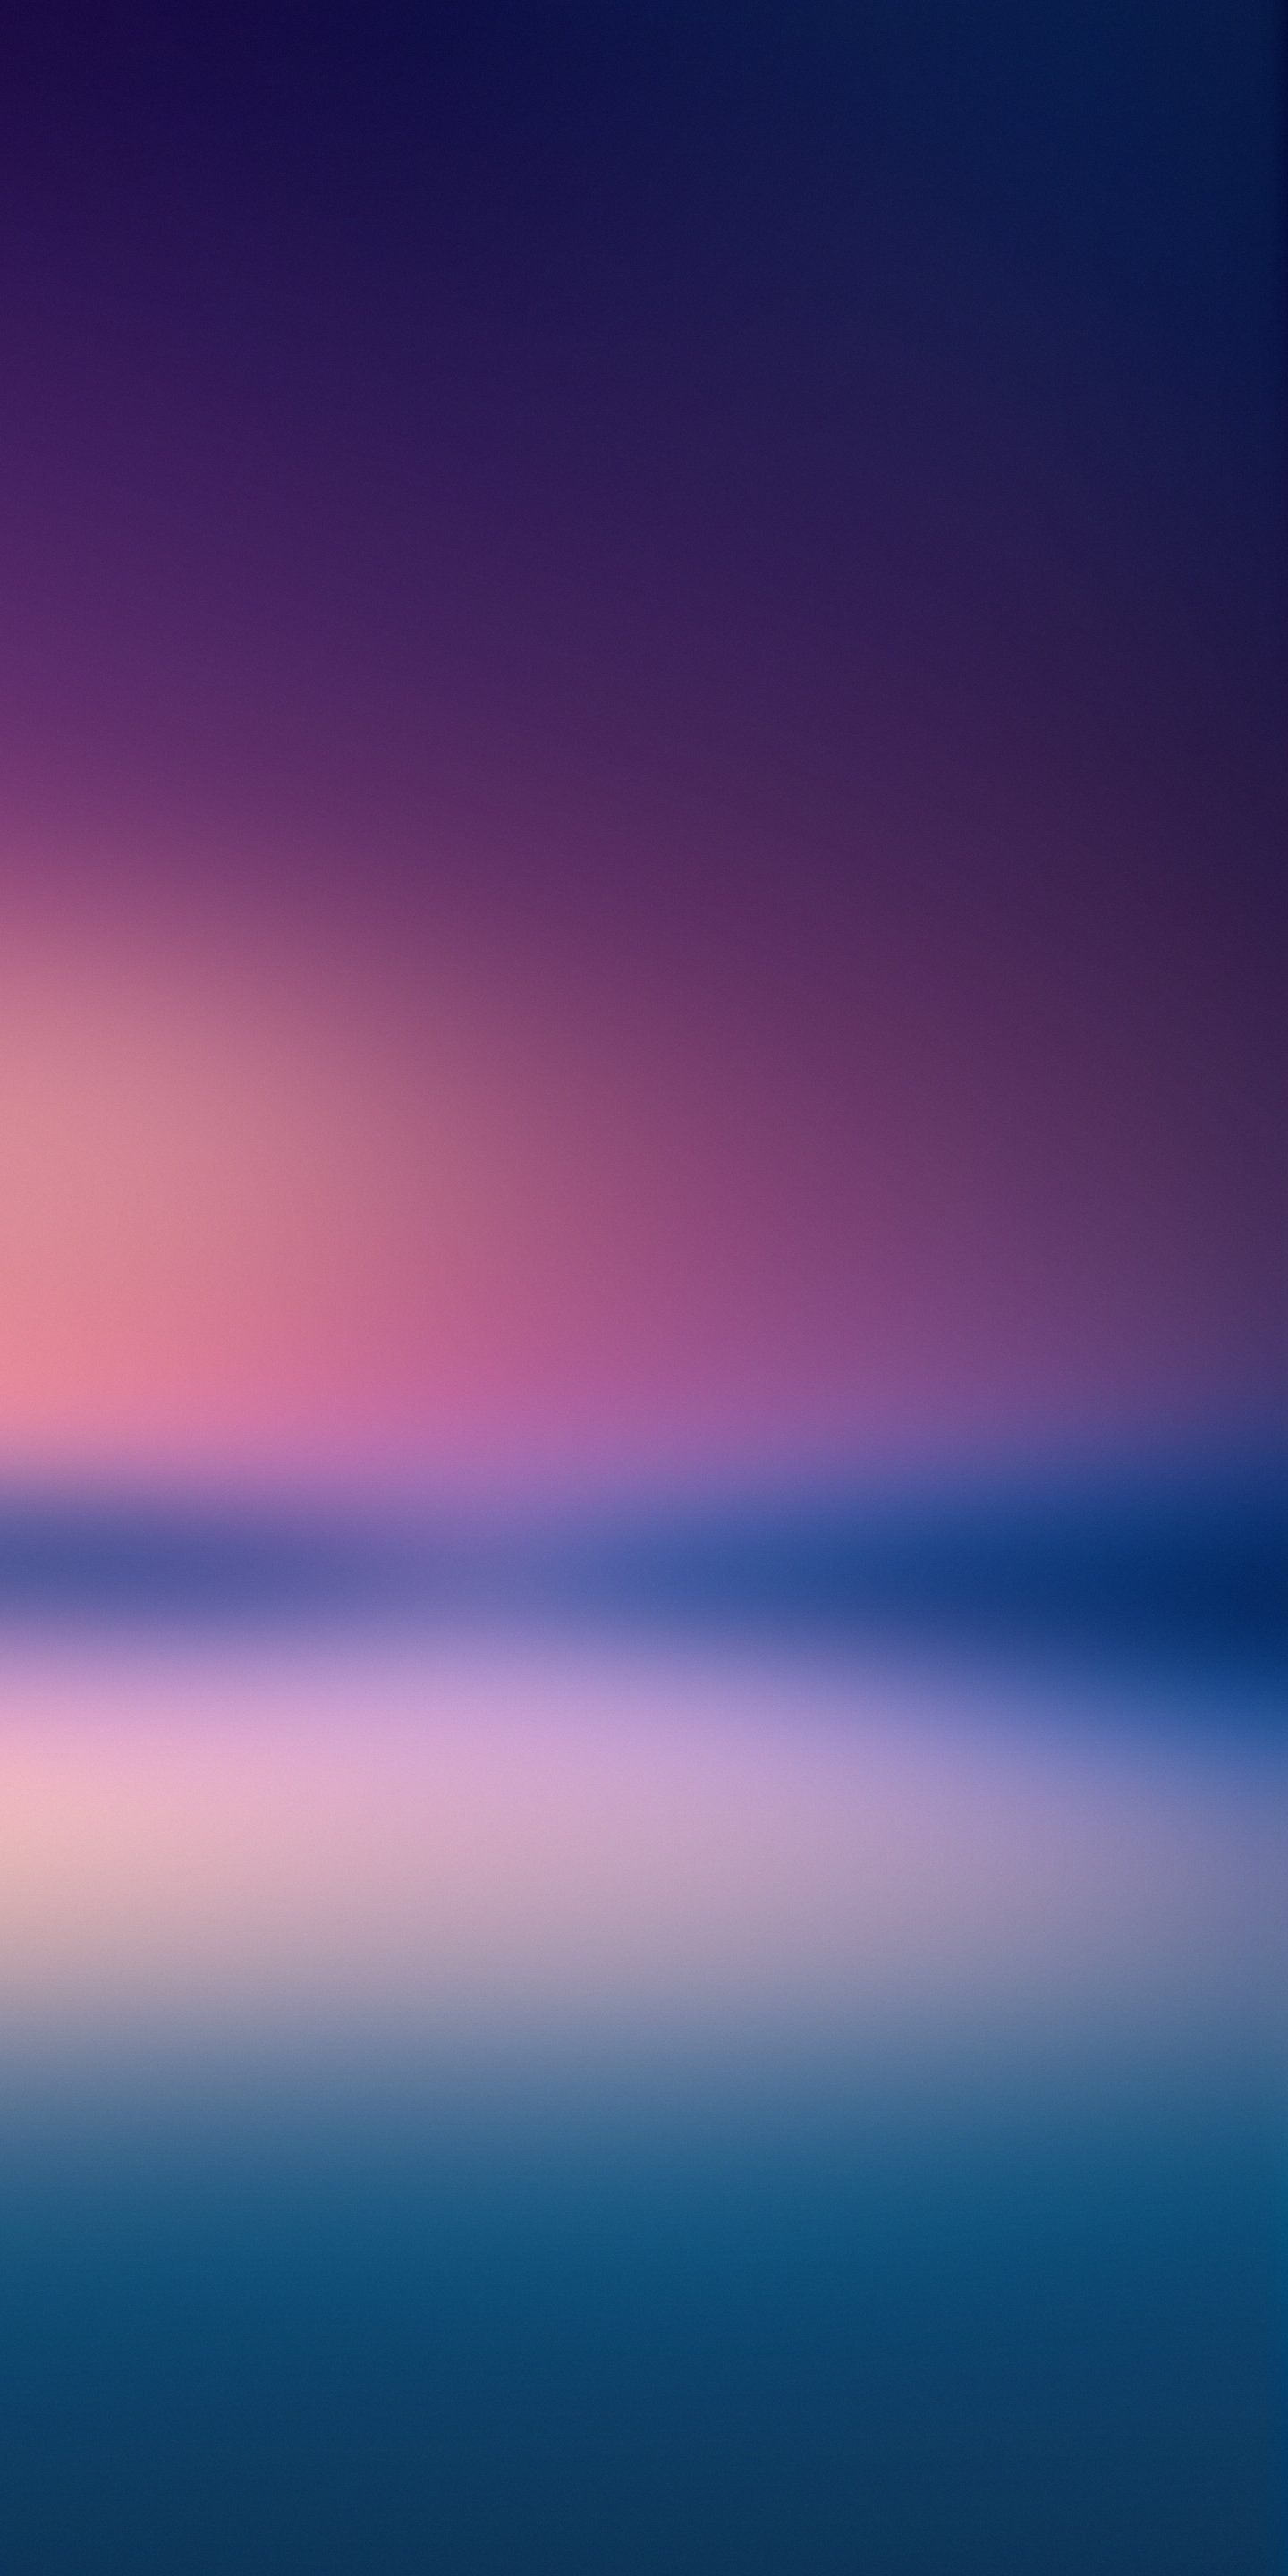 Exclusive Download Lg V30 Stock Wallpapers Iphone Wallpaper Blur Stock Wallpaper Phone Screen Wallpaper